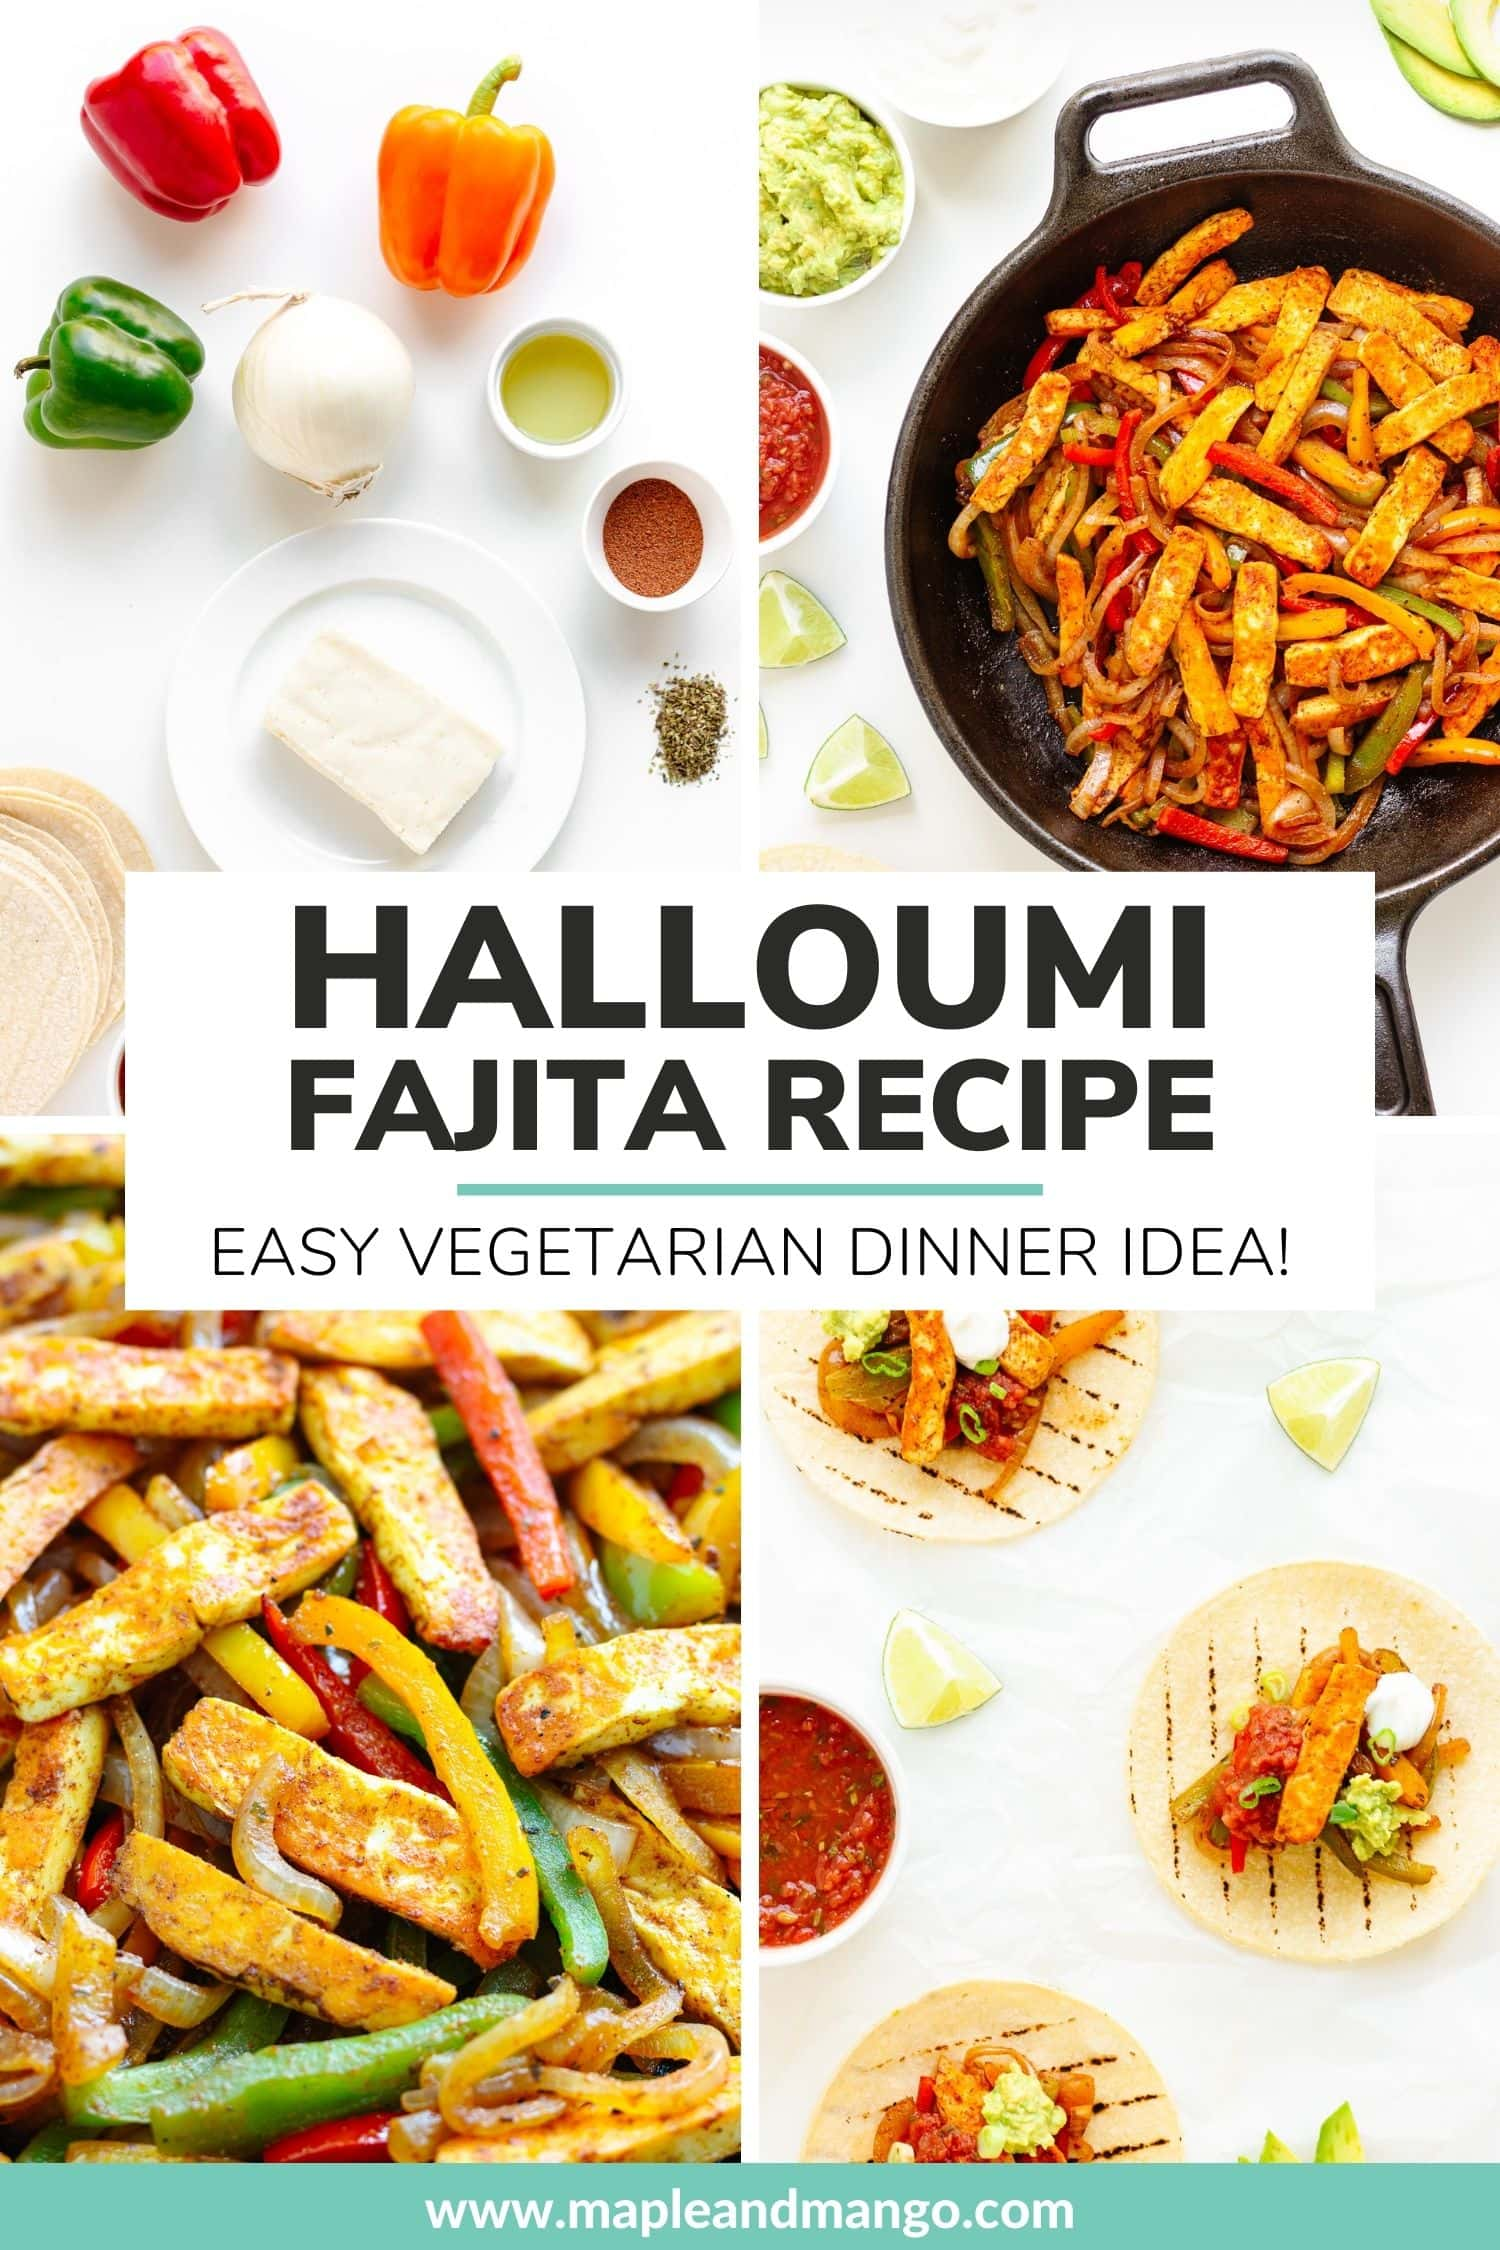 """Photo collage showing different stages of making halloumi fajitas with text overlay """"Halloumi Fajita Recipe: Easy Vegetarian Dinner Idea""""."""